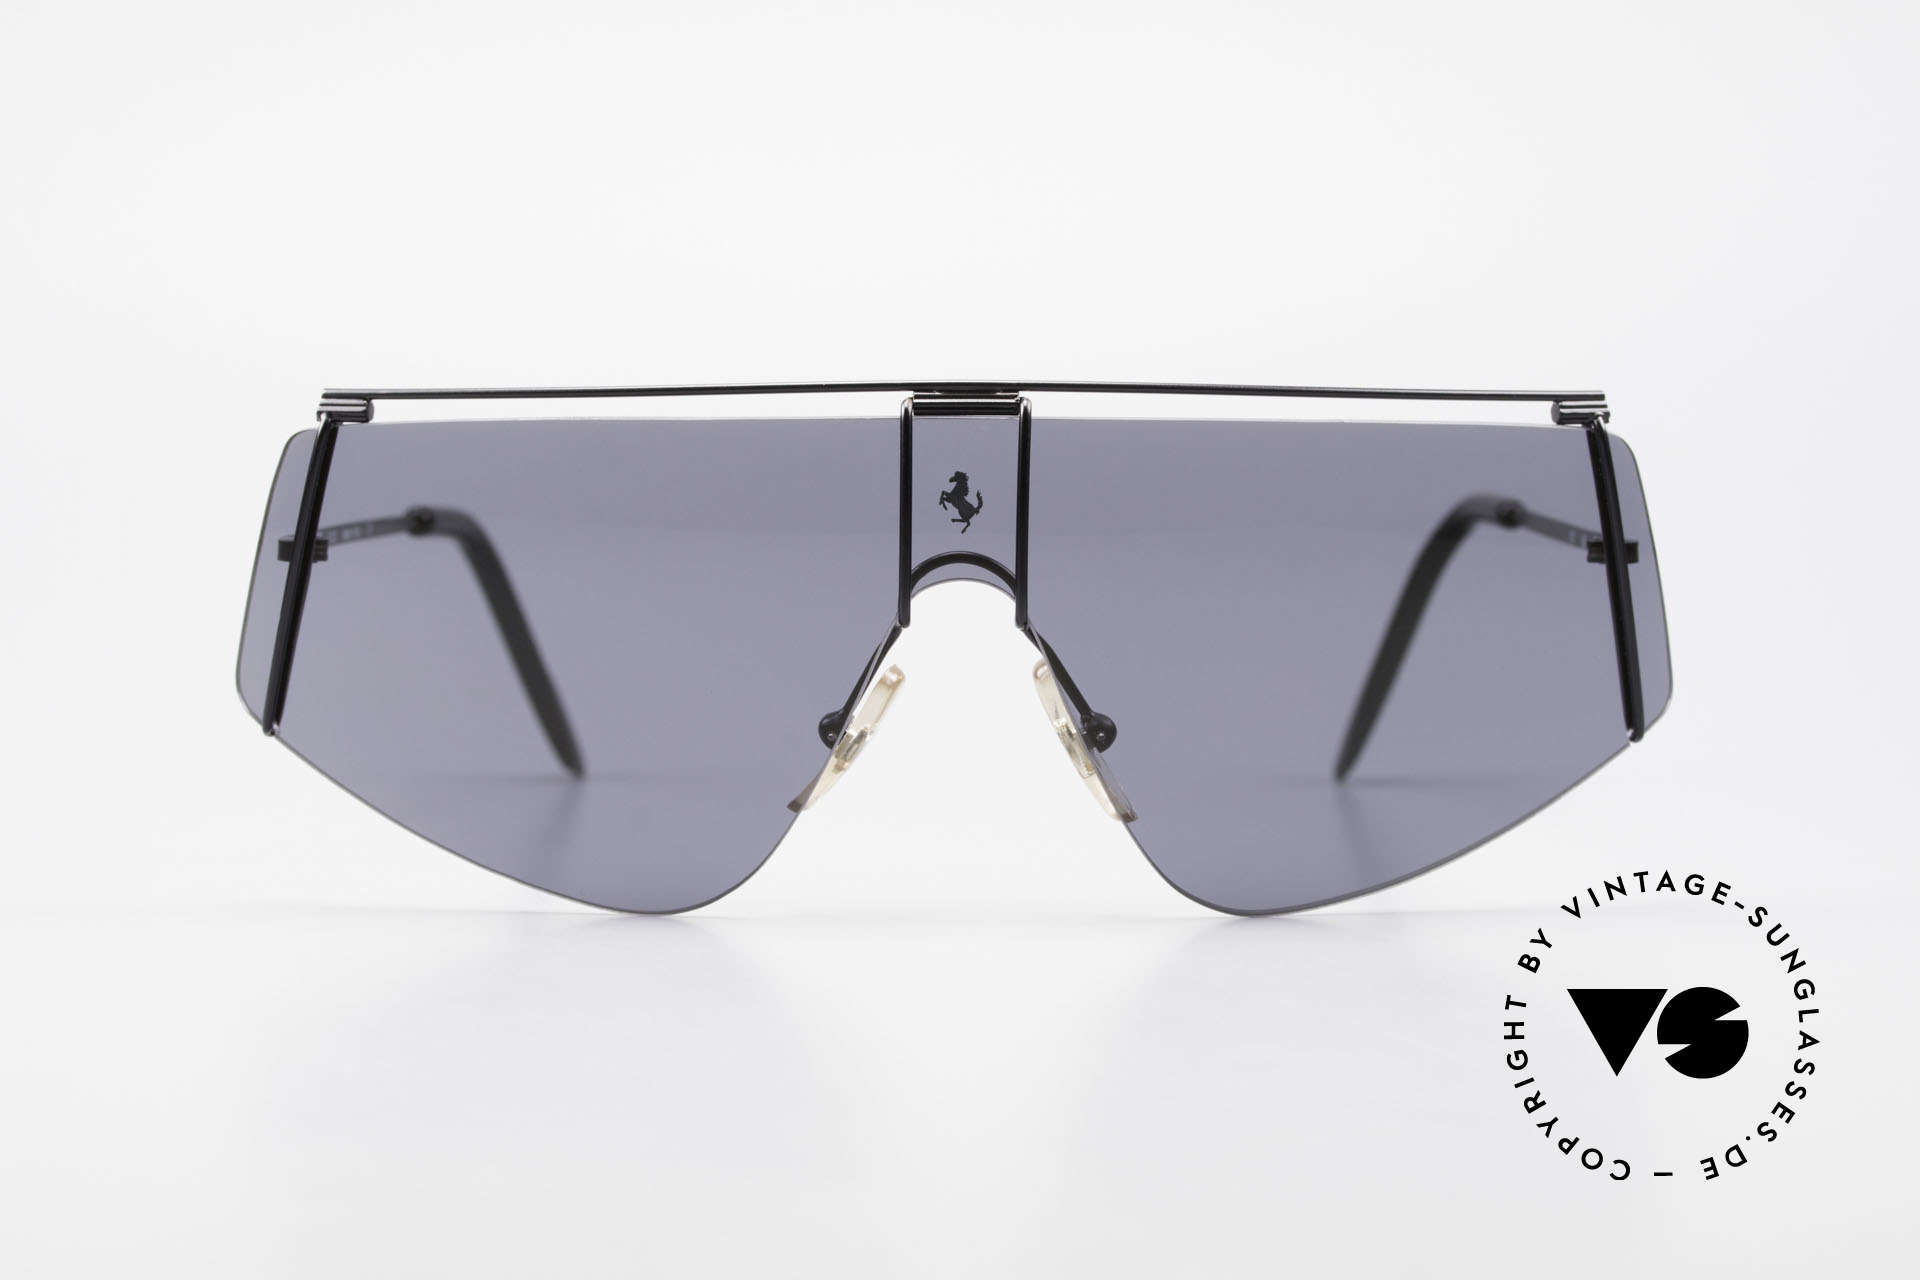 Ferrari F15/S Luxury 90's Sports Sunglasses, finest quality and superior materials from Italy, Made for Men and Women